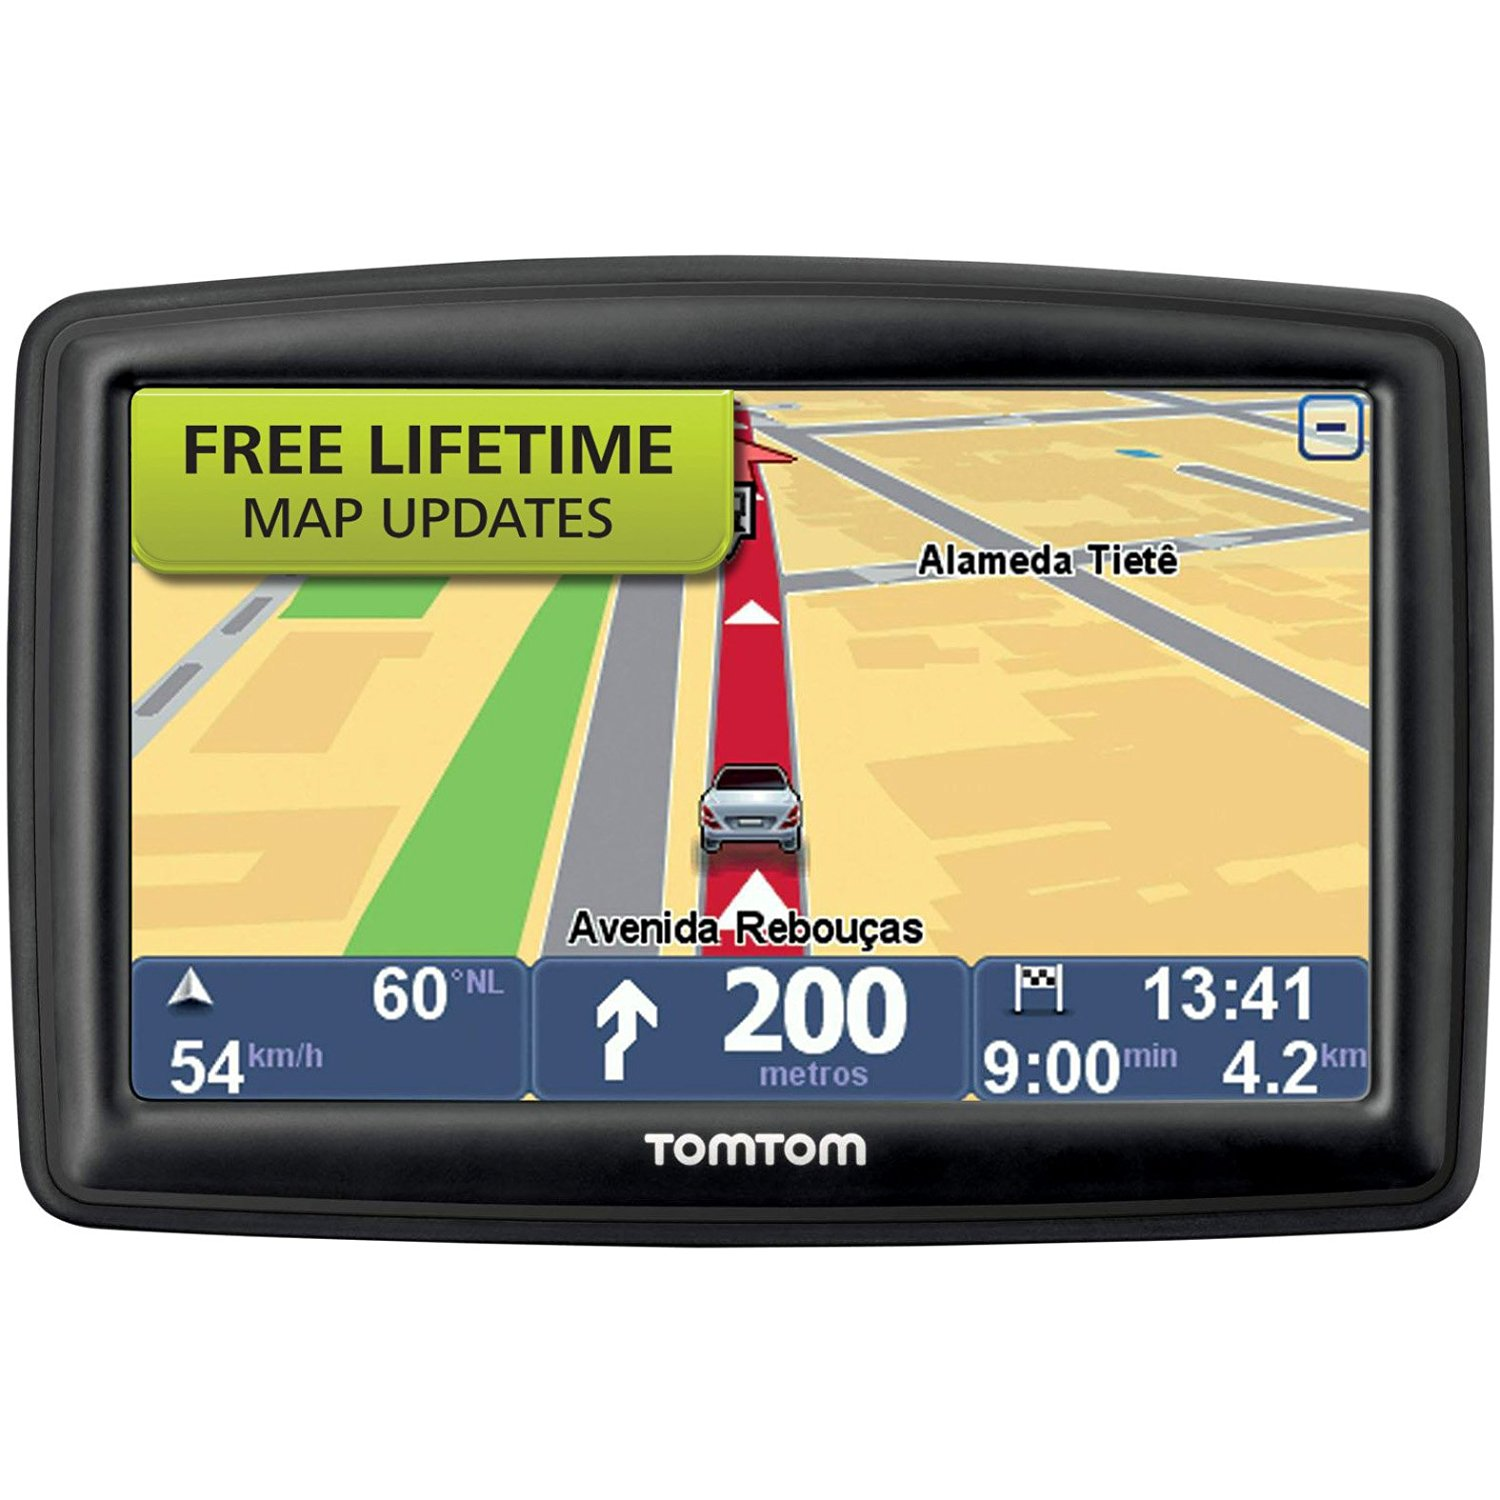 Amazoncouk: tomtom map update